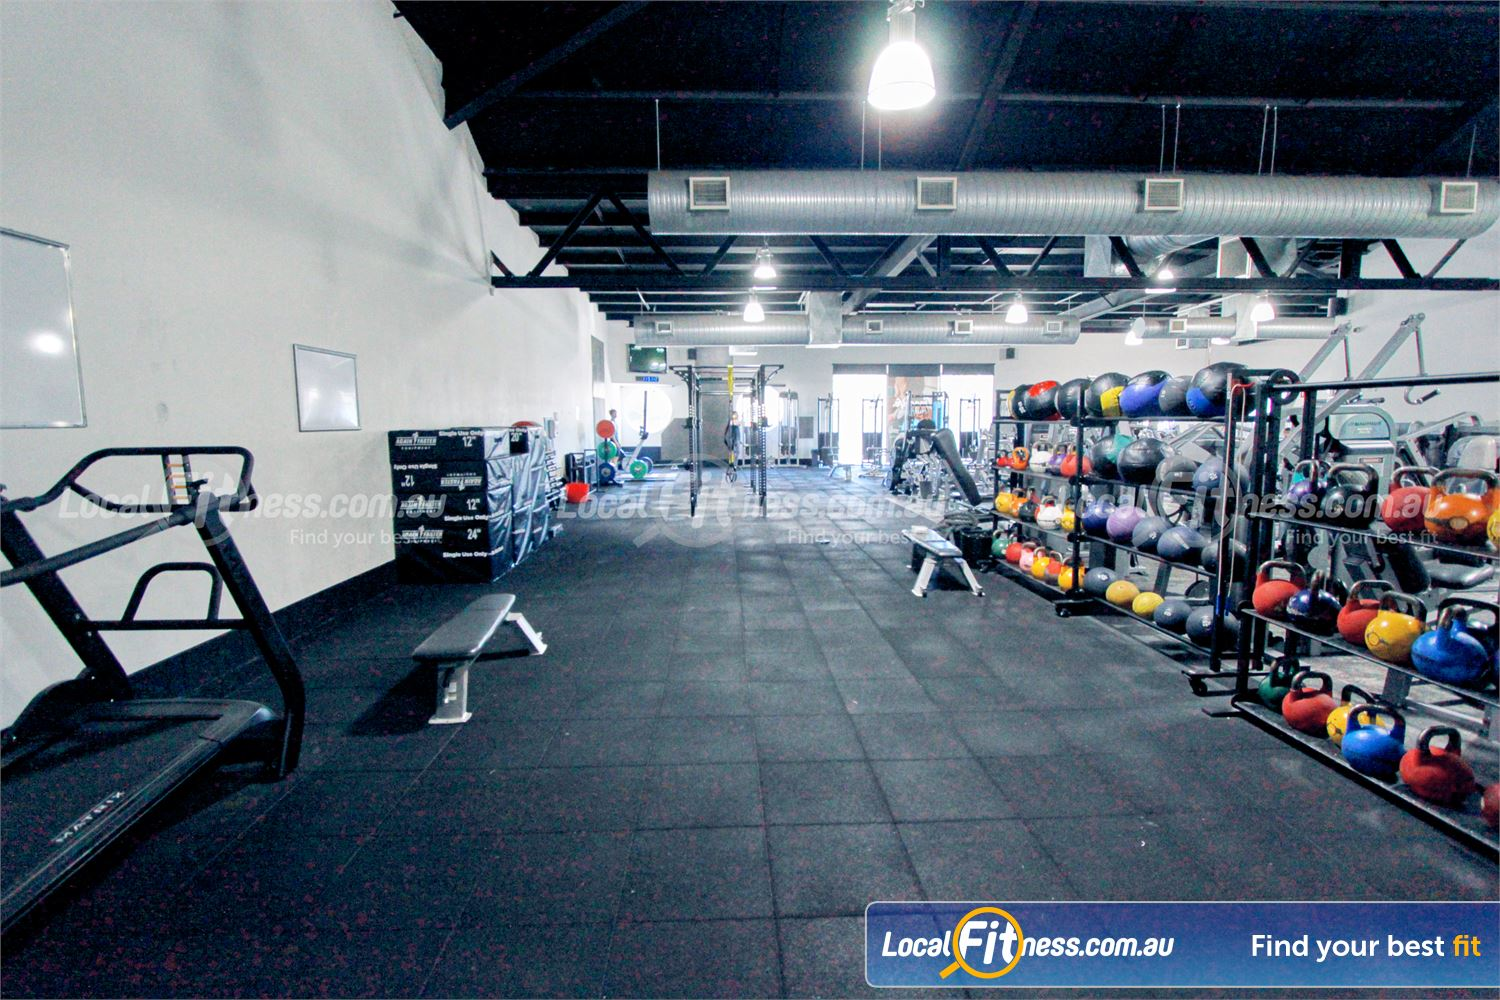 Goodlife Health Clubs Near Lilydale the spacious Mooroolbark HIIT gym and functional training zone.